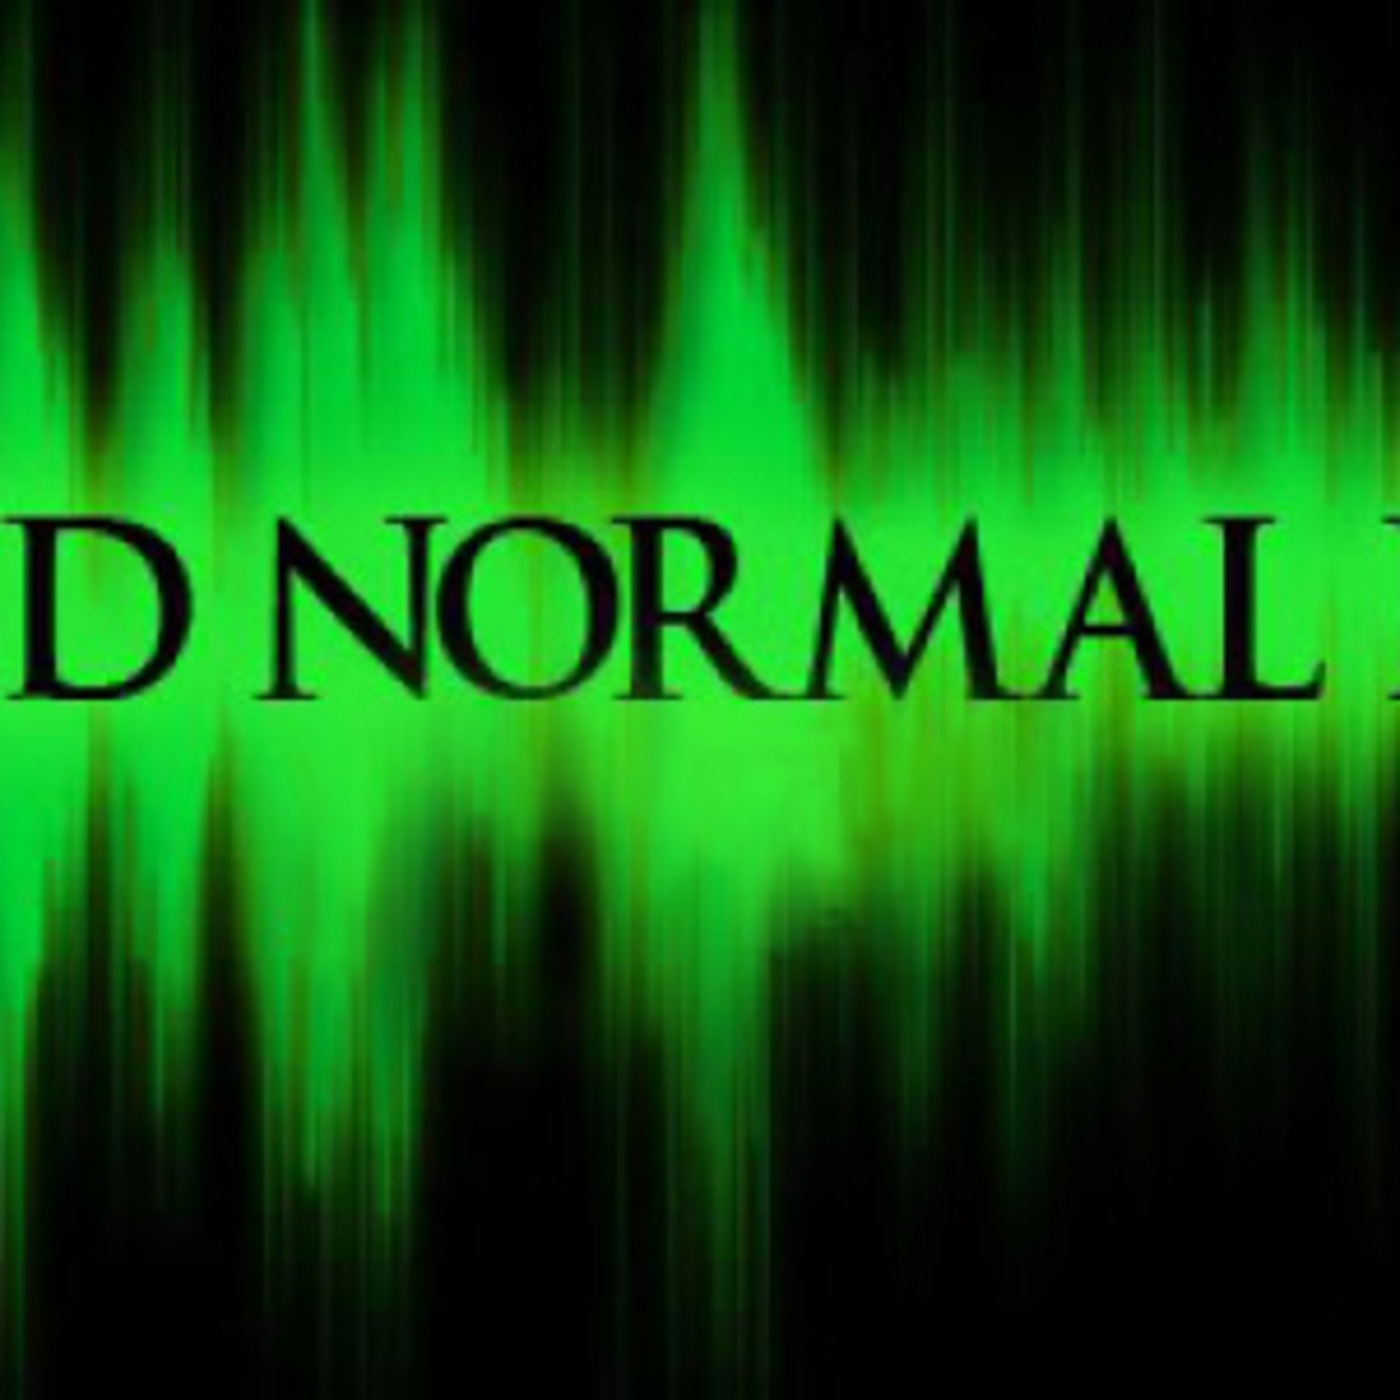 BEYOND NORMAL RADIO